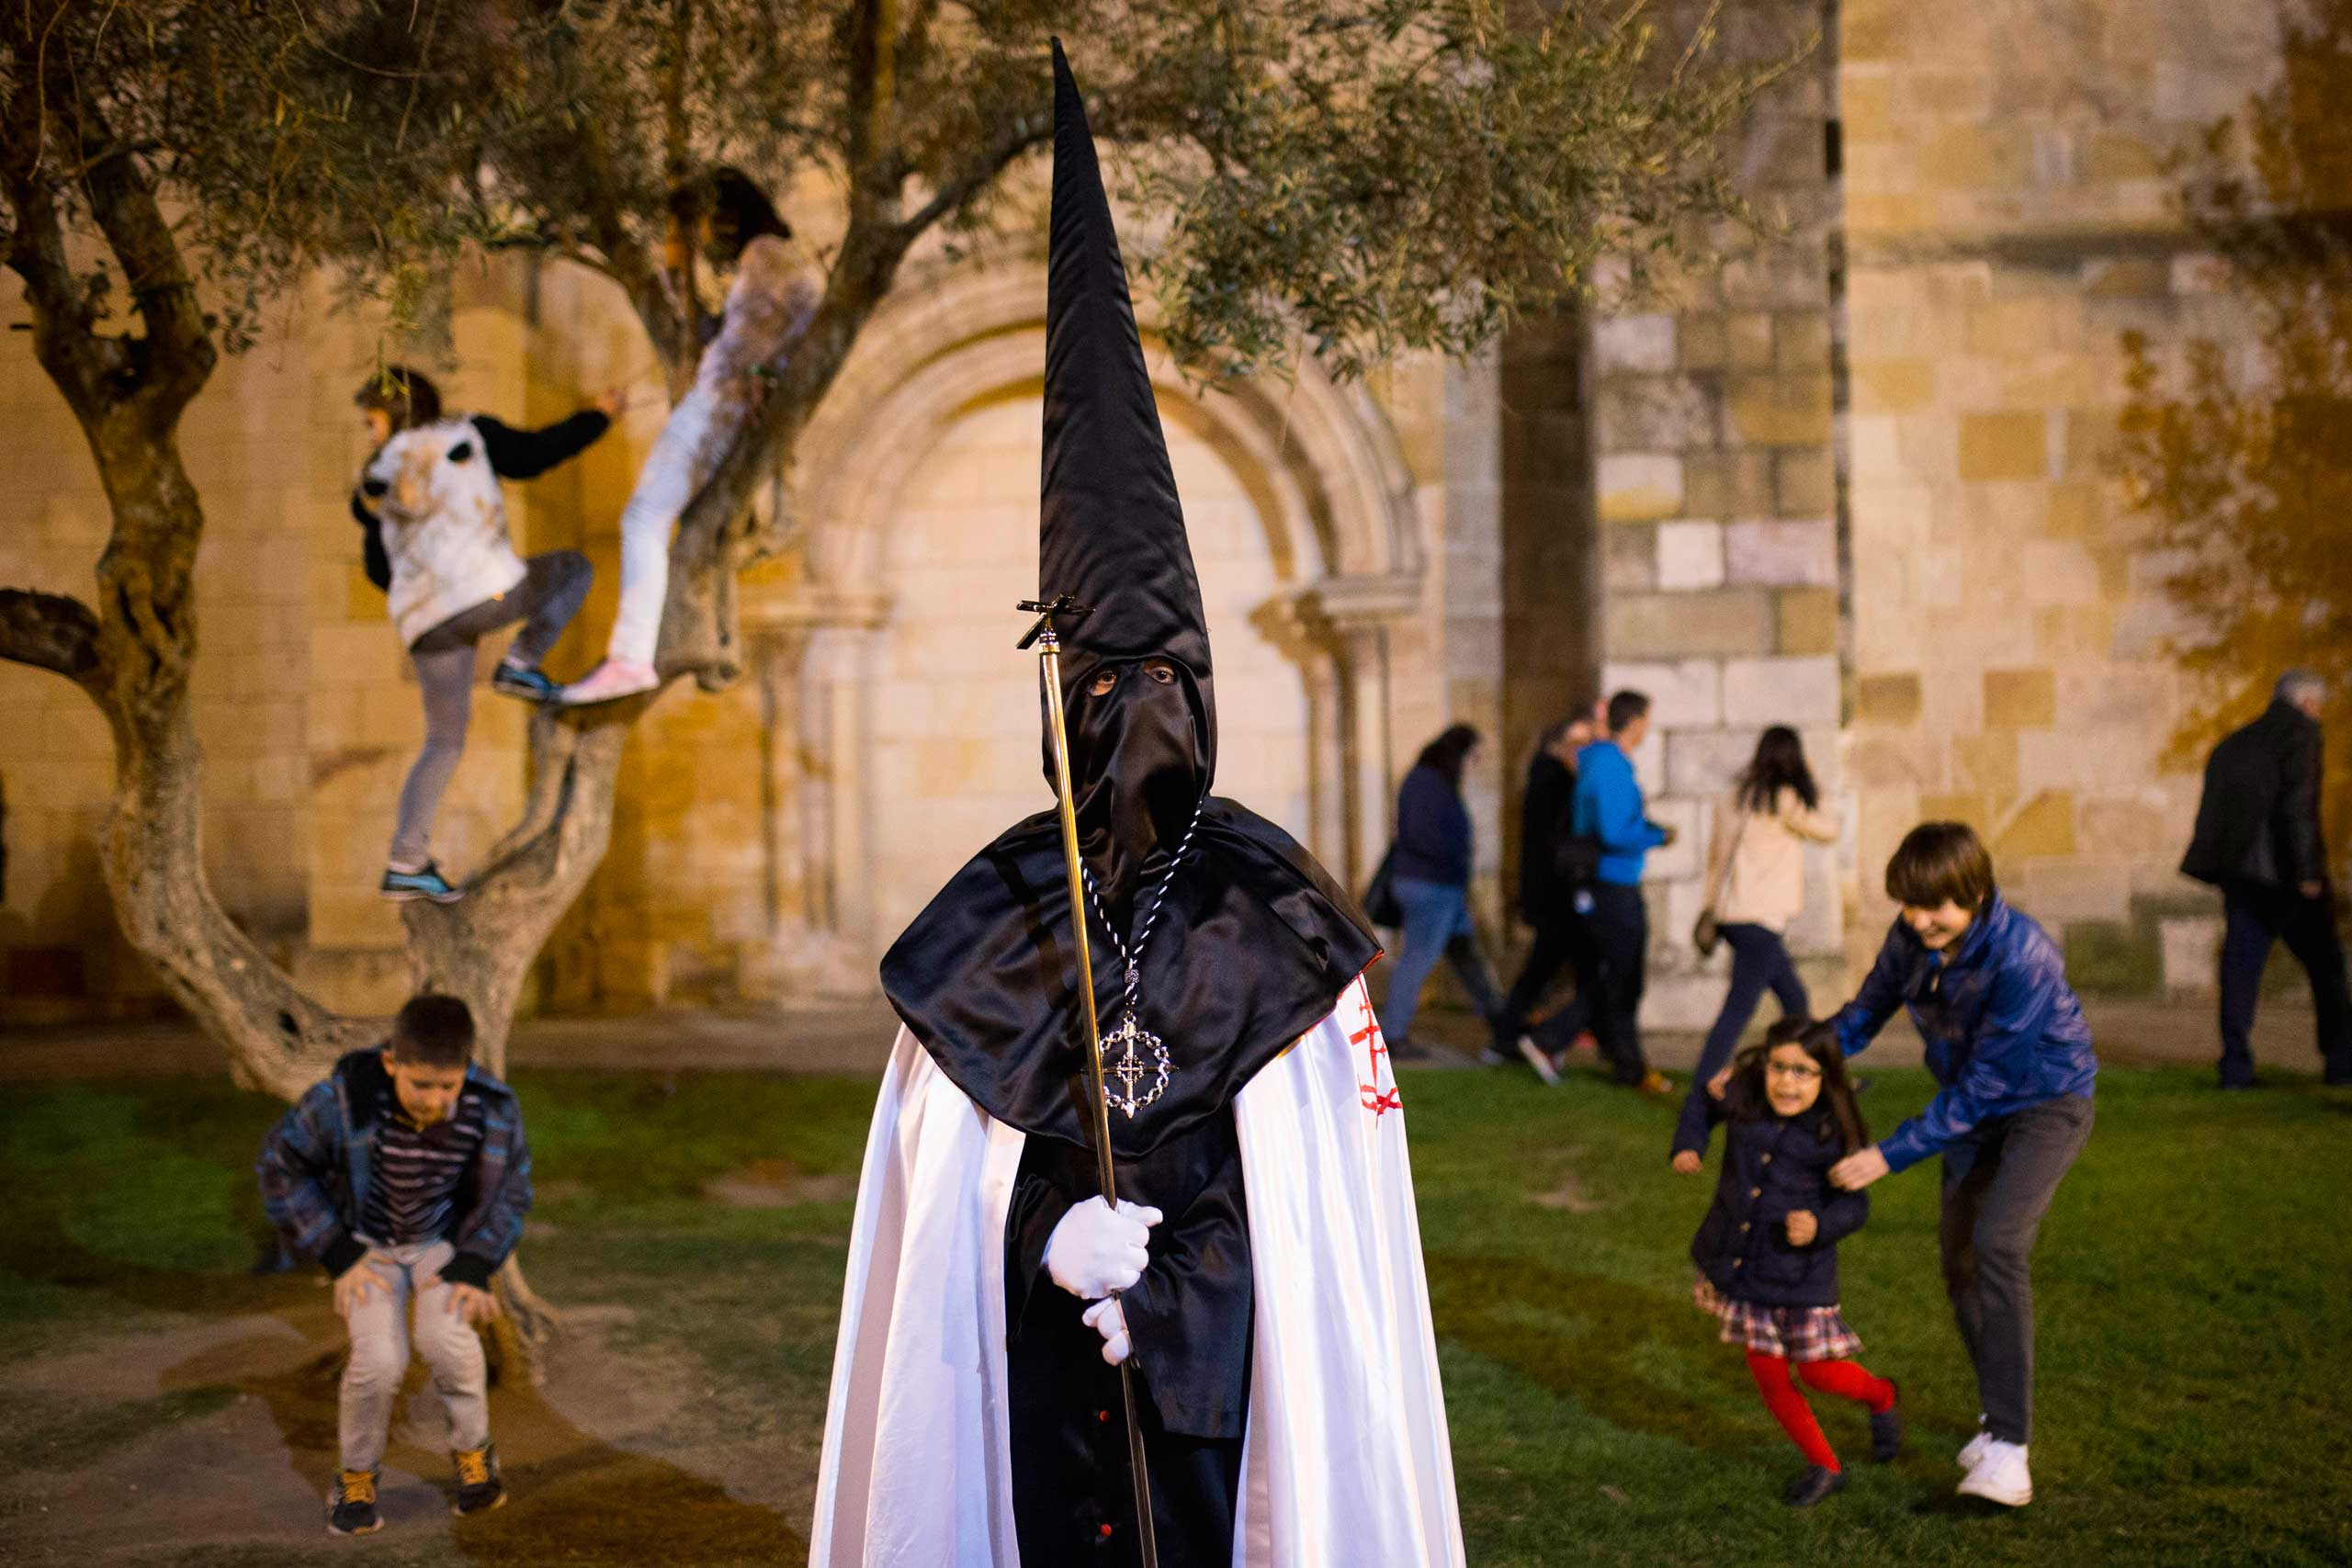 Children play in the background as a penitent watches a march in Zamora, Spain, April 14, 2014.